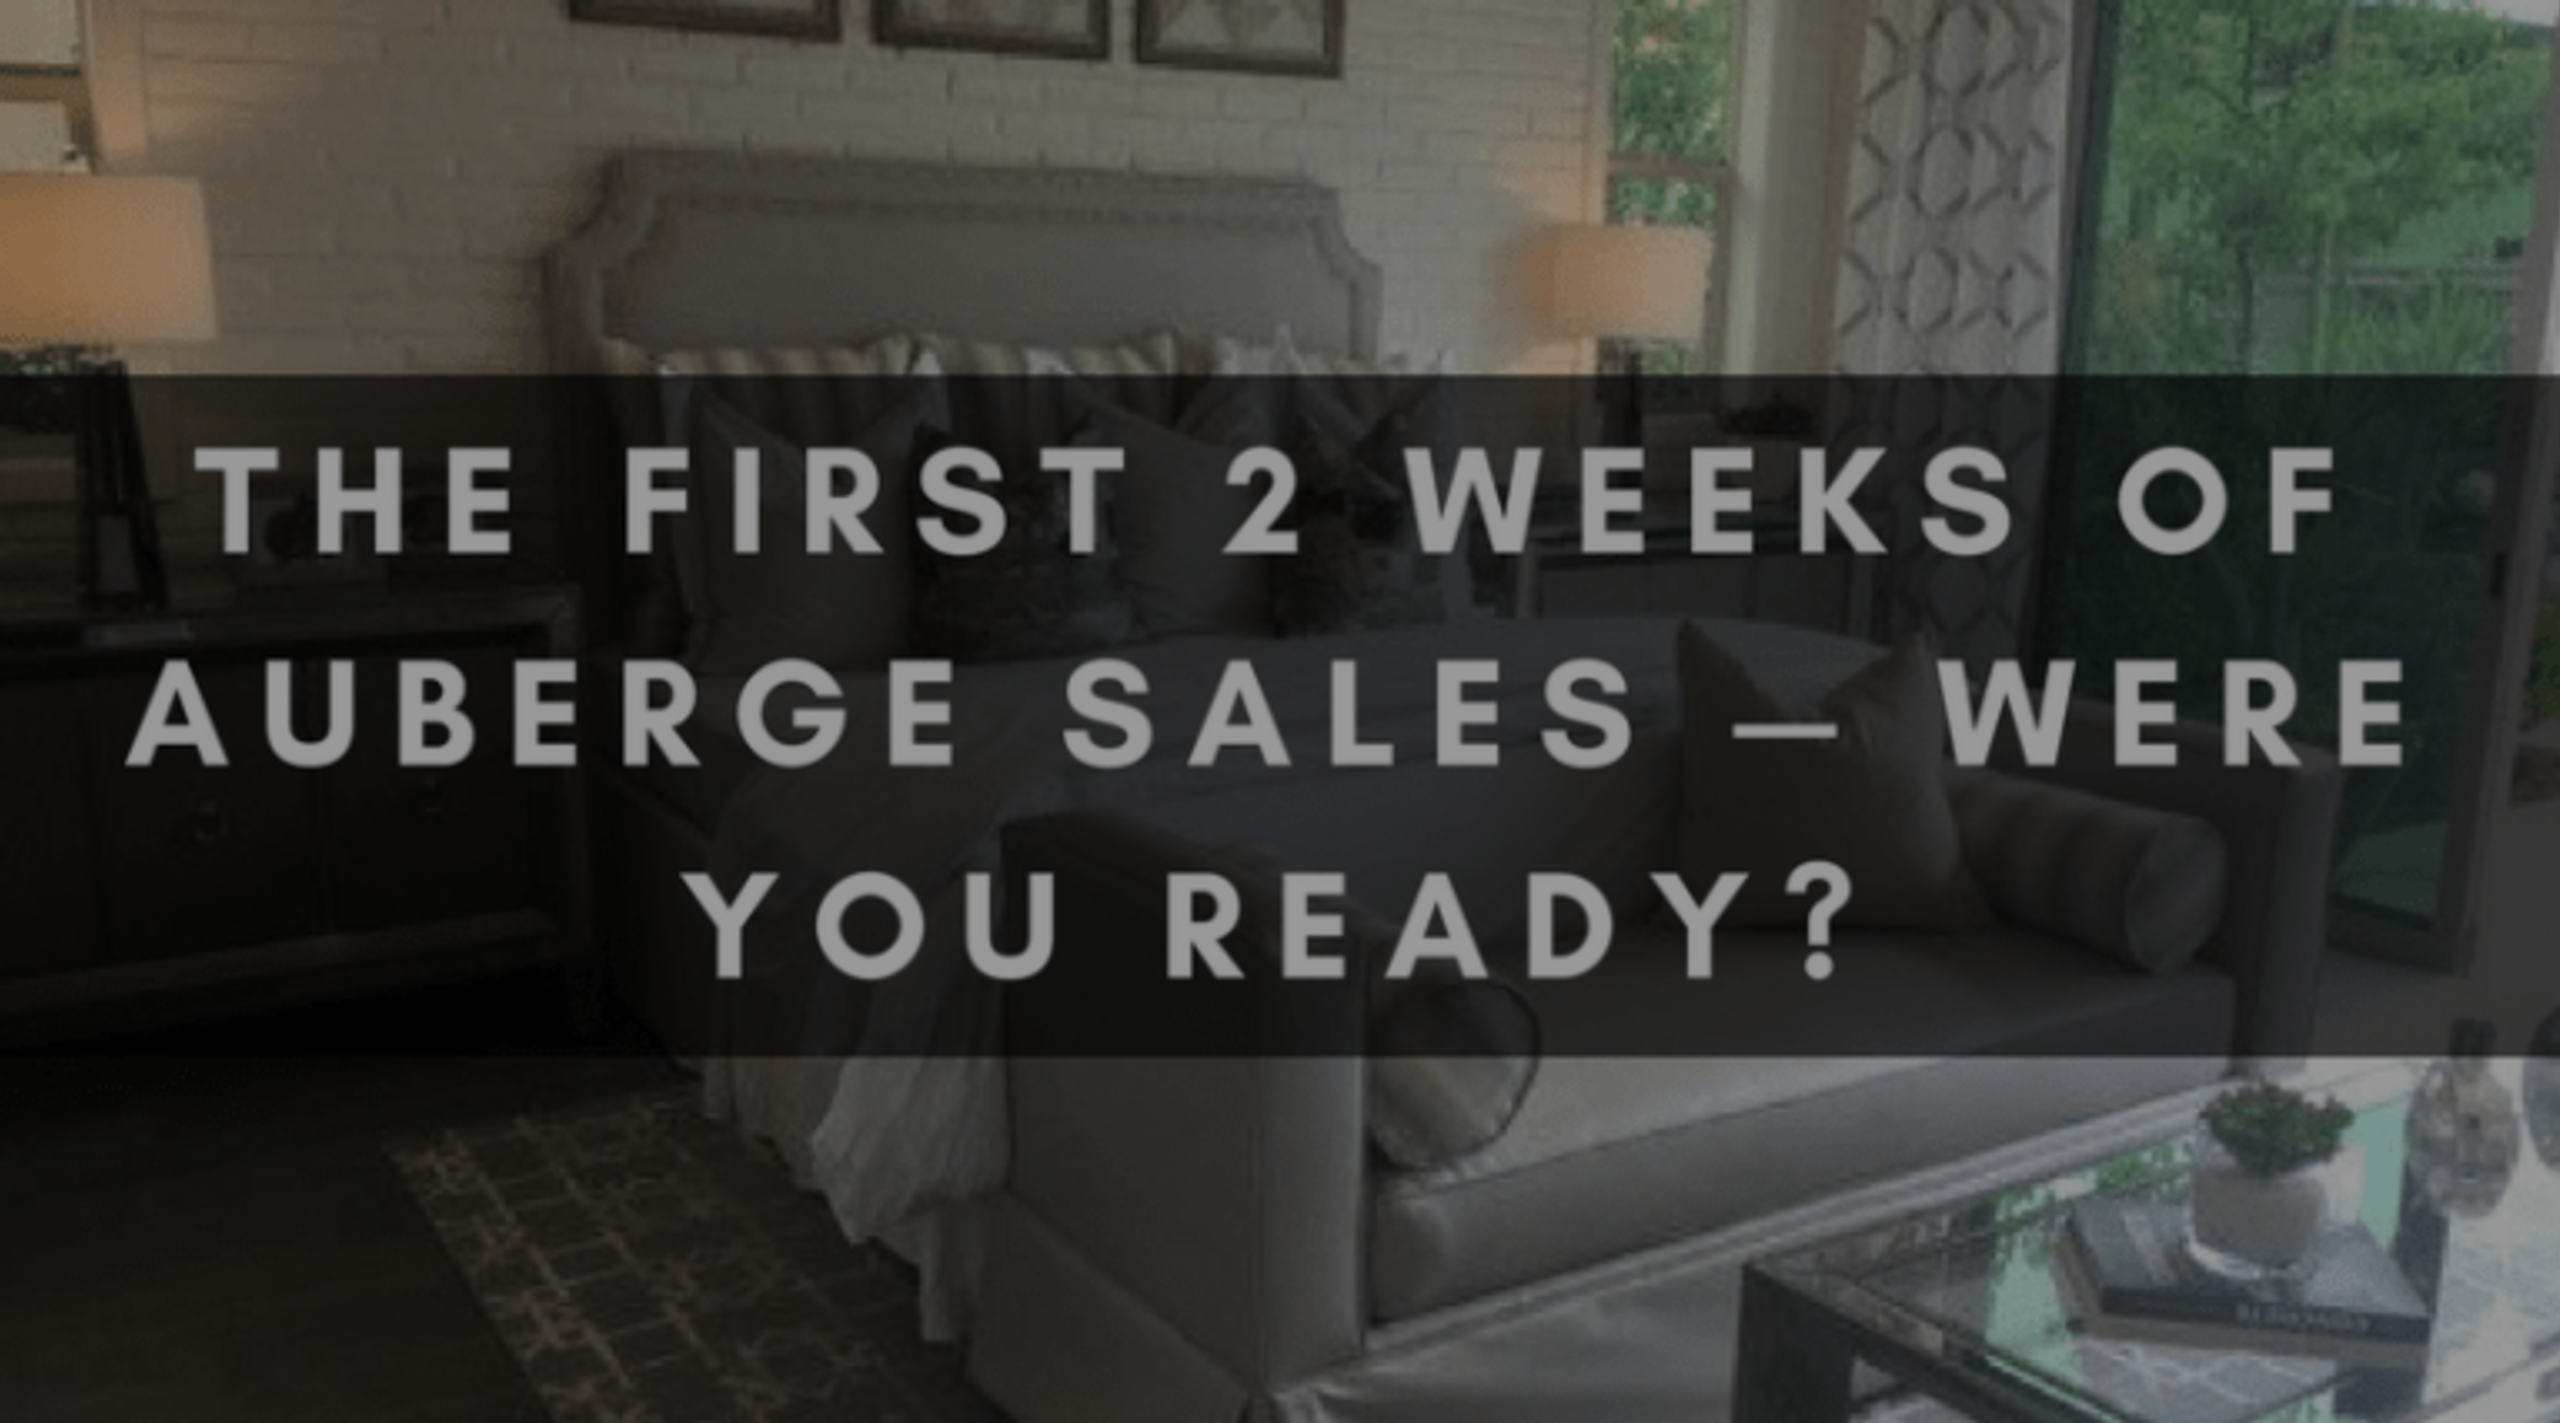 THE FIRST 2 WEEKS OF AUBERGE SALES — WERE YOU READY?